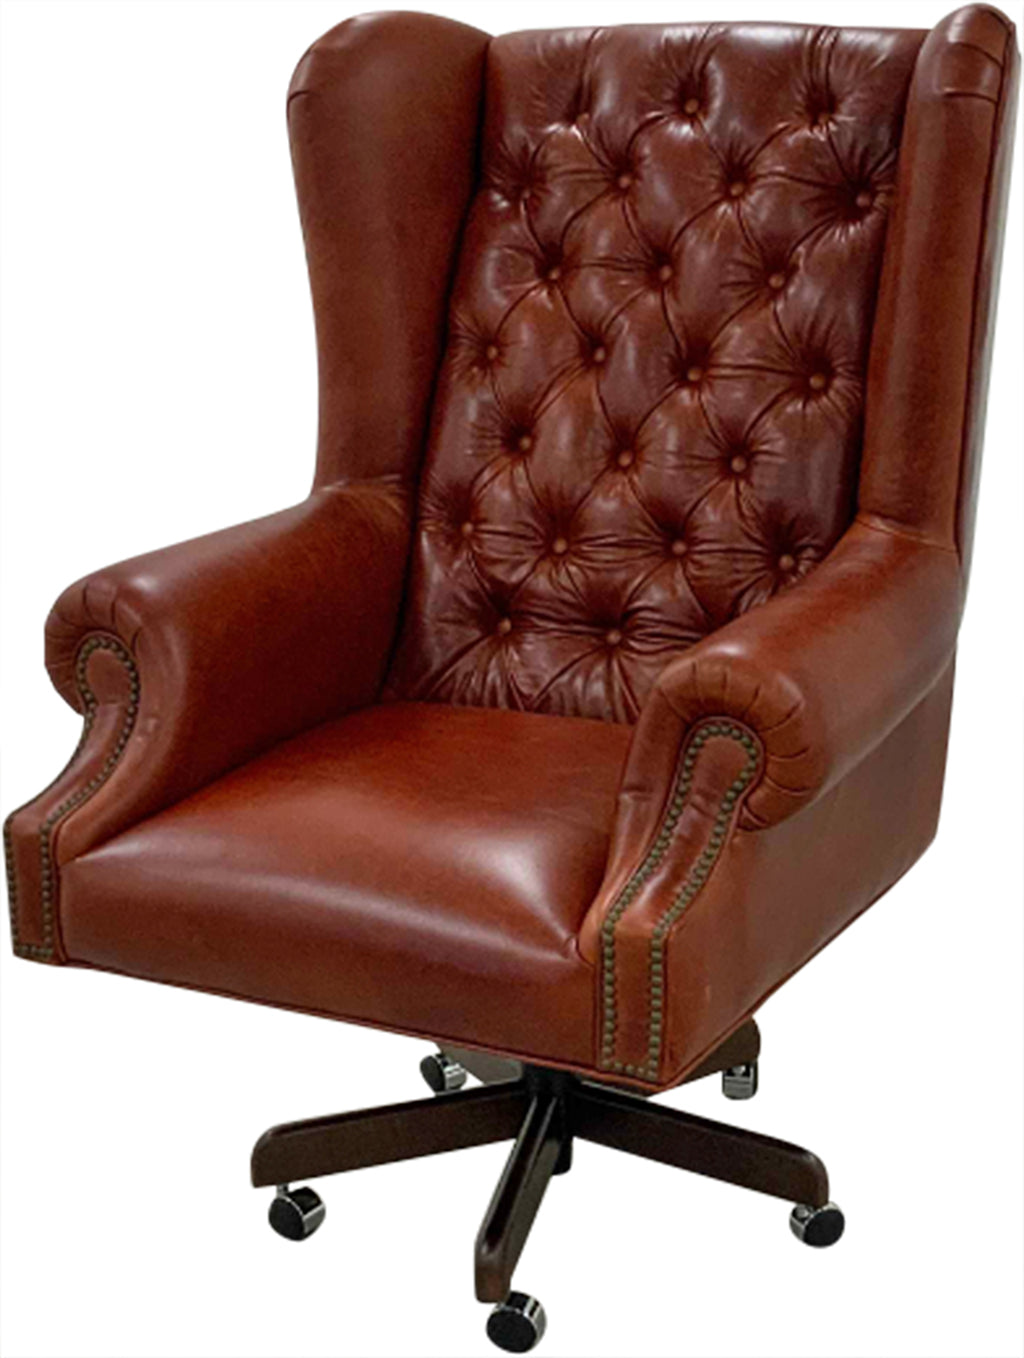 Roja Executive Chair